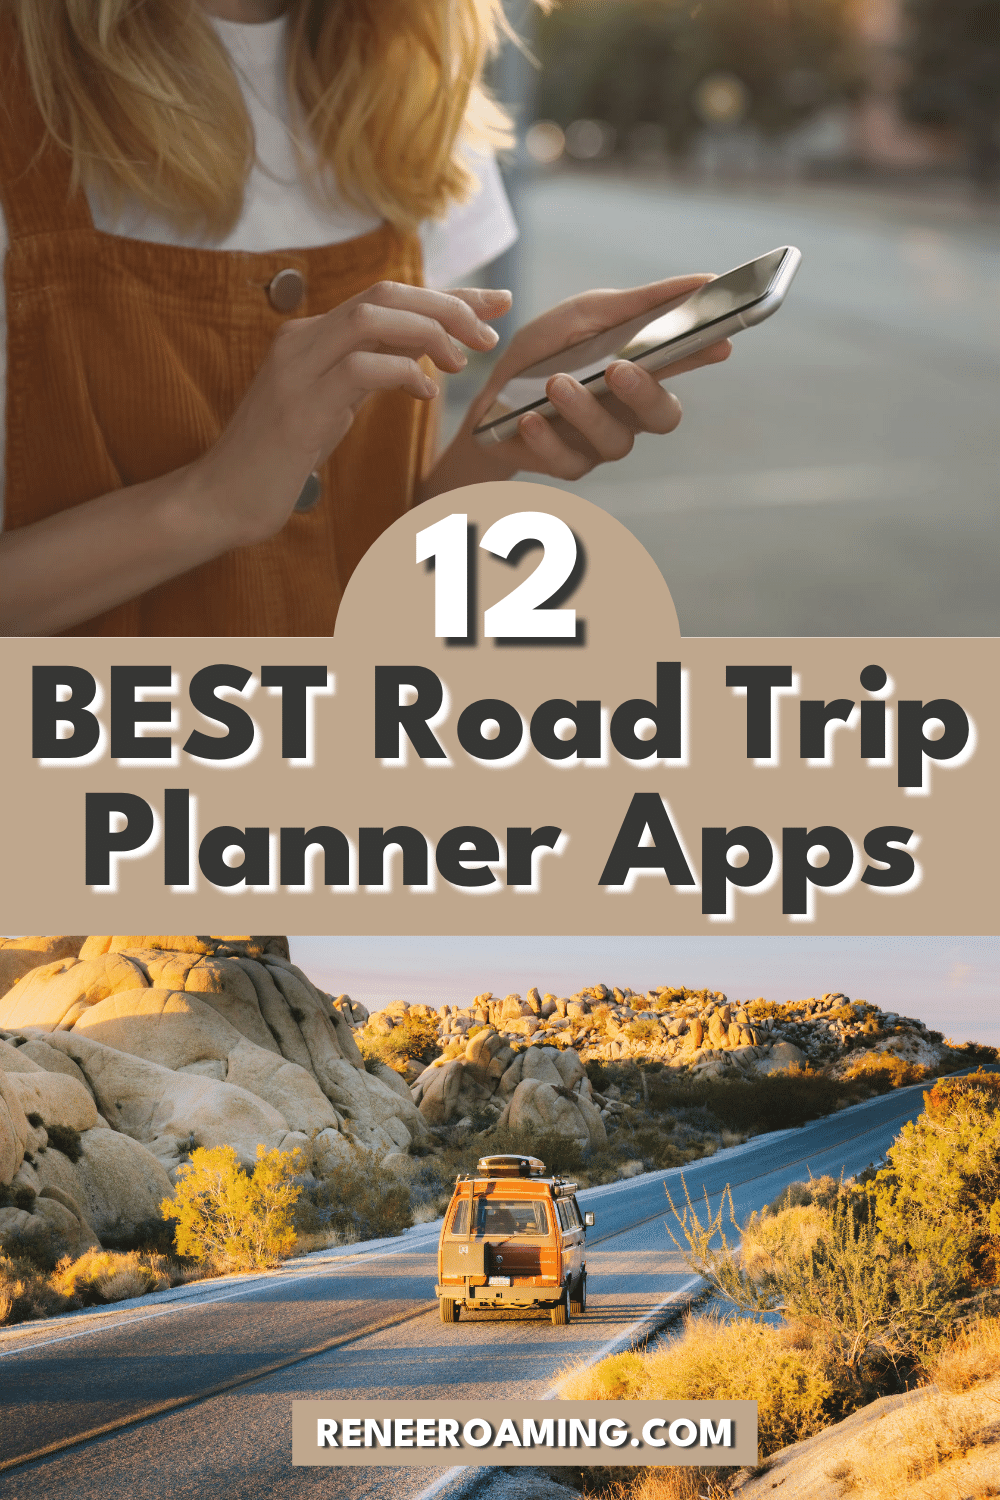 12 Best Road Trip Planner Apps to Help You Find Free Campsites, Cheap Gas, Hiking Trails, and more